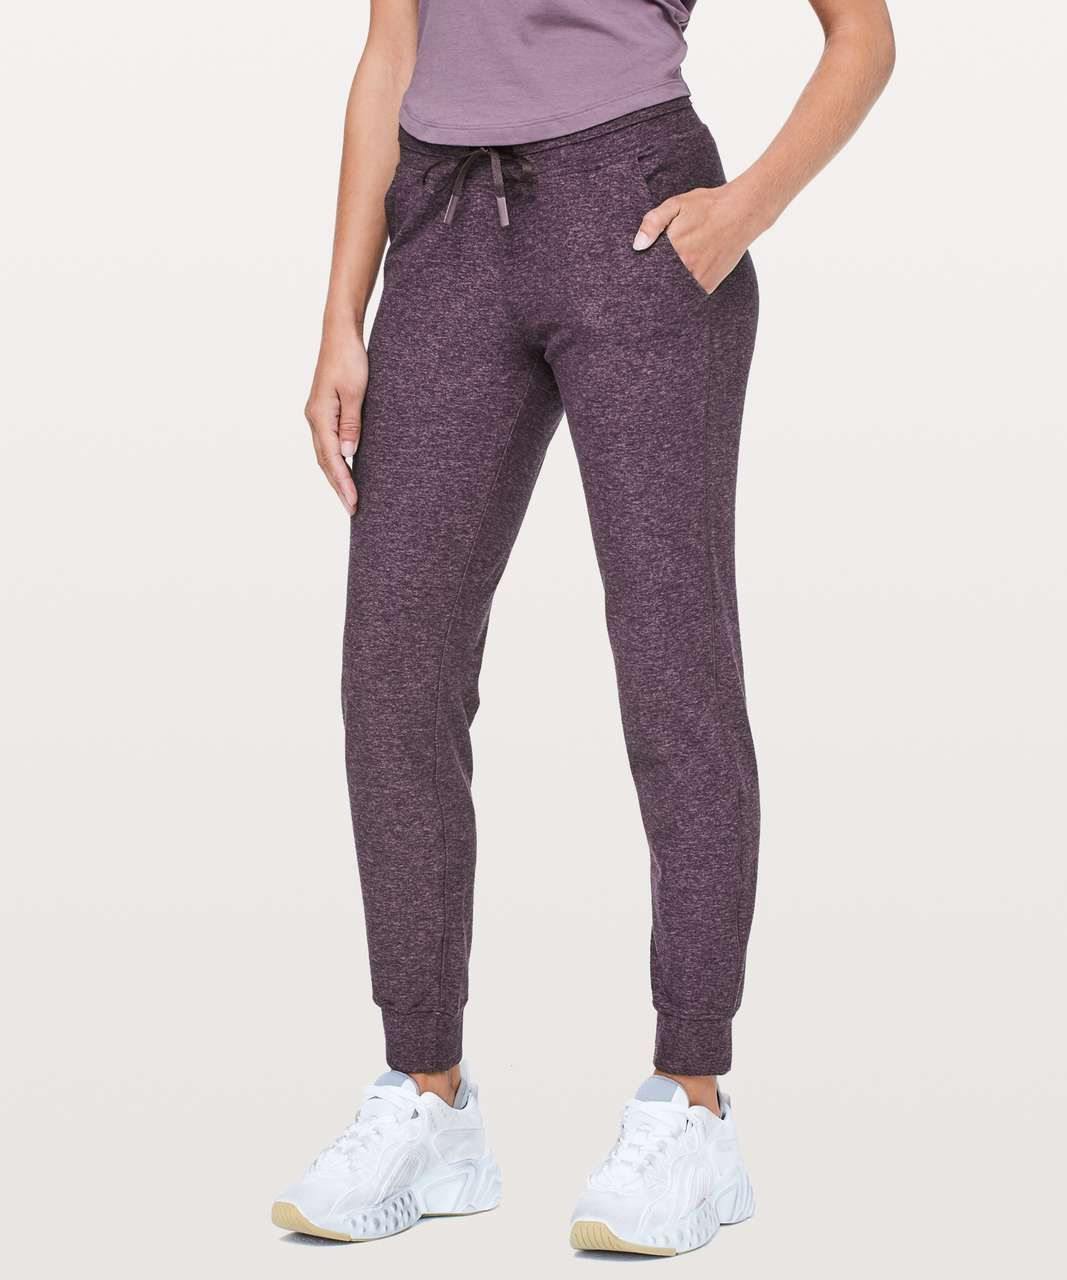 56456e016f Warm up, cool down, or kick back in these cozy, sweat-wicking  joggers.Rulu™Stretchy, naturally breathable Rulu™ fabric is sweat-wicking  and buttery ...